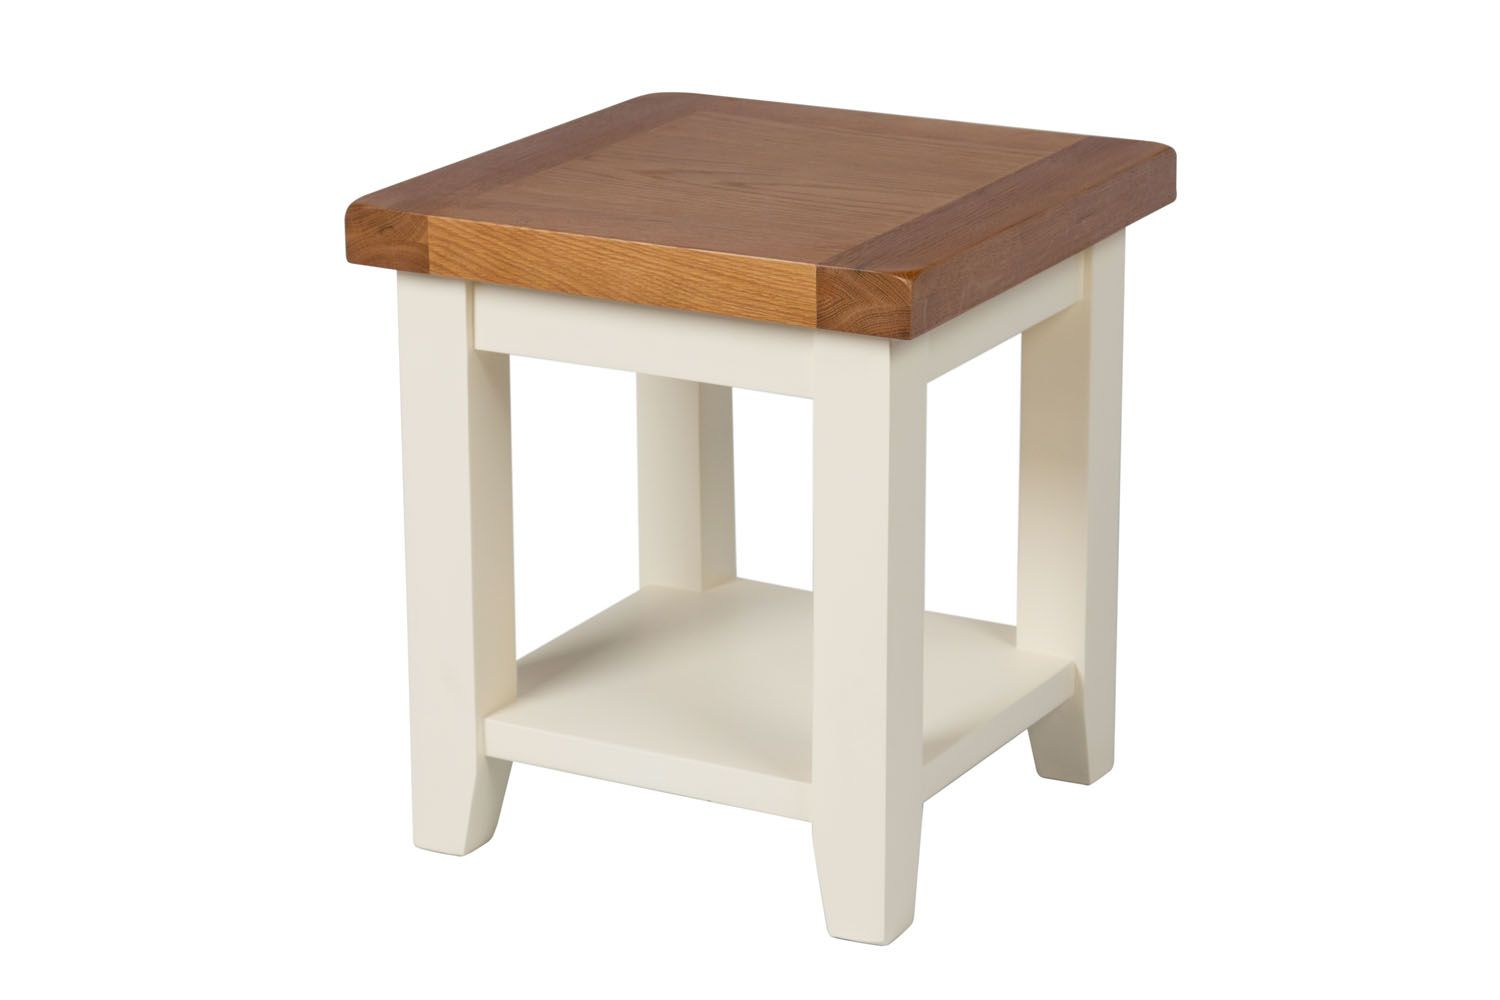 Country cottage cream painted oak lamp table with shelf aloadofball Choice Image